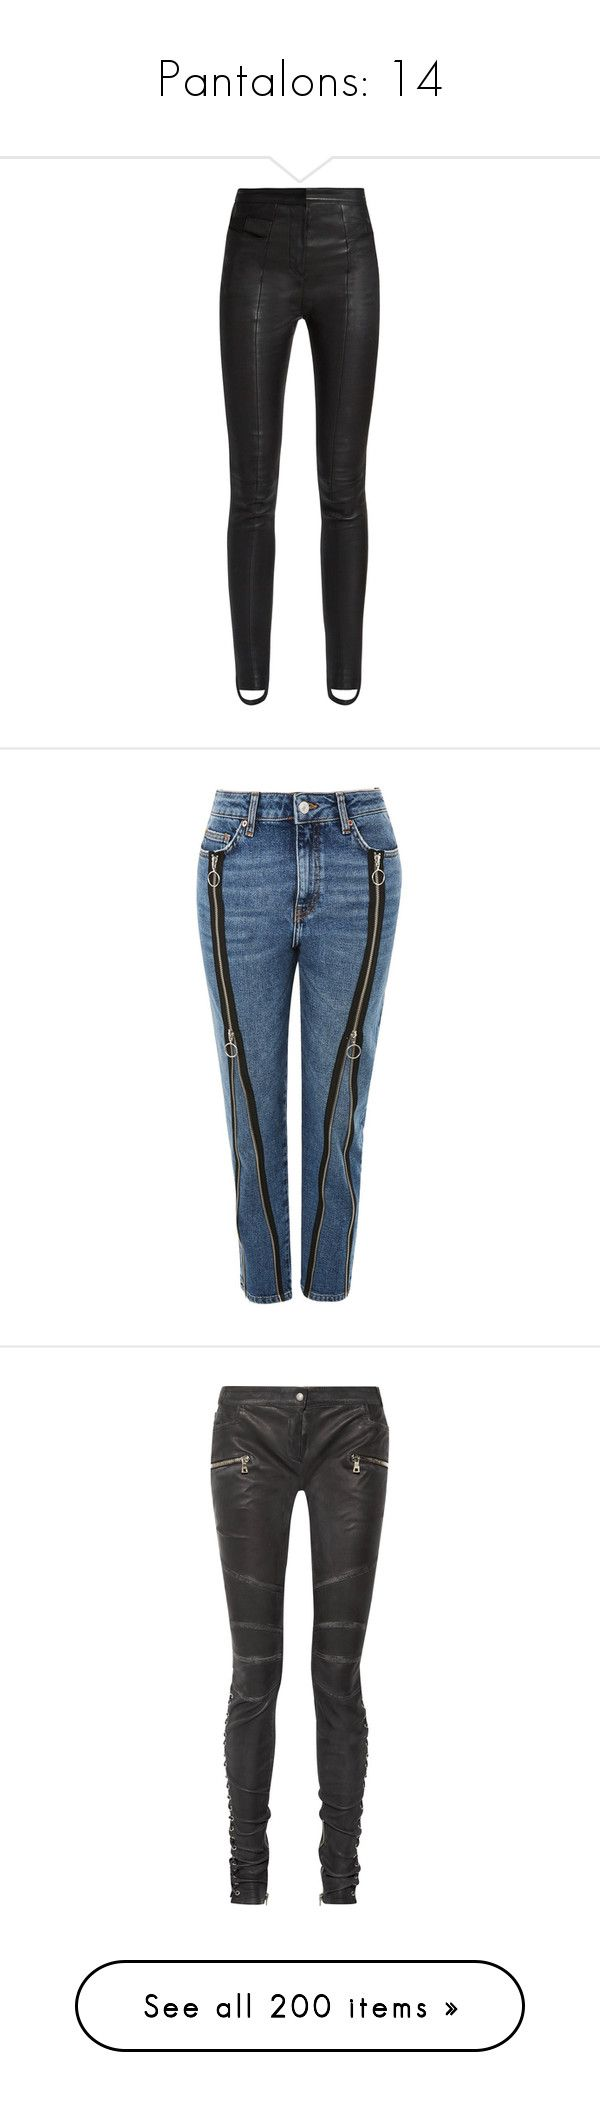 """""""Pantalons: 14"""" by laurie-1994 ❤ liked on Polyvore featuring pants, bottoms, black, high-waisted leather pants, high-waisted pants, balmain pants, leather trousers, slim fitted pants, jeans and blue colour jeans"""